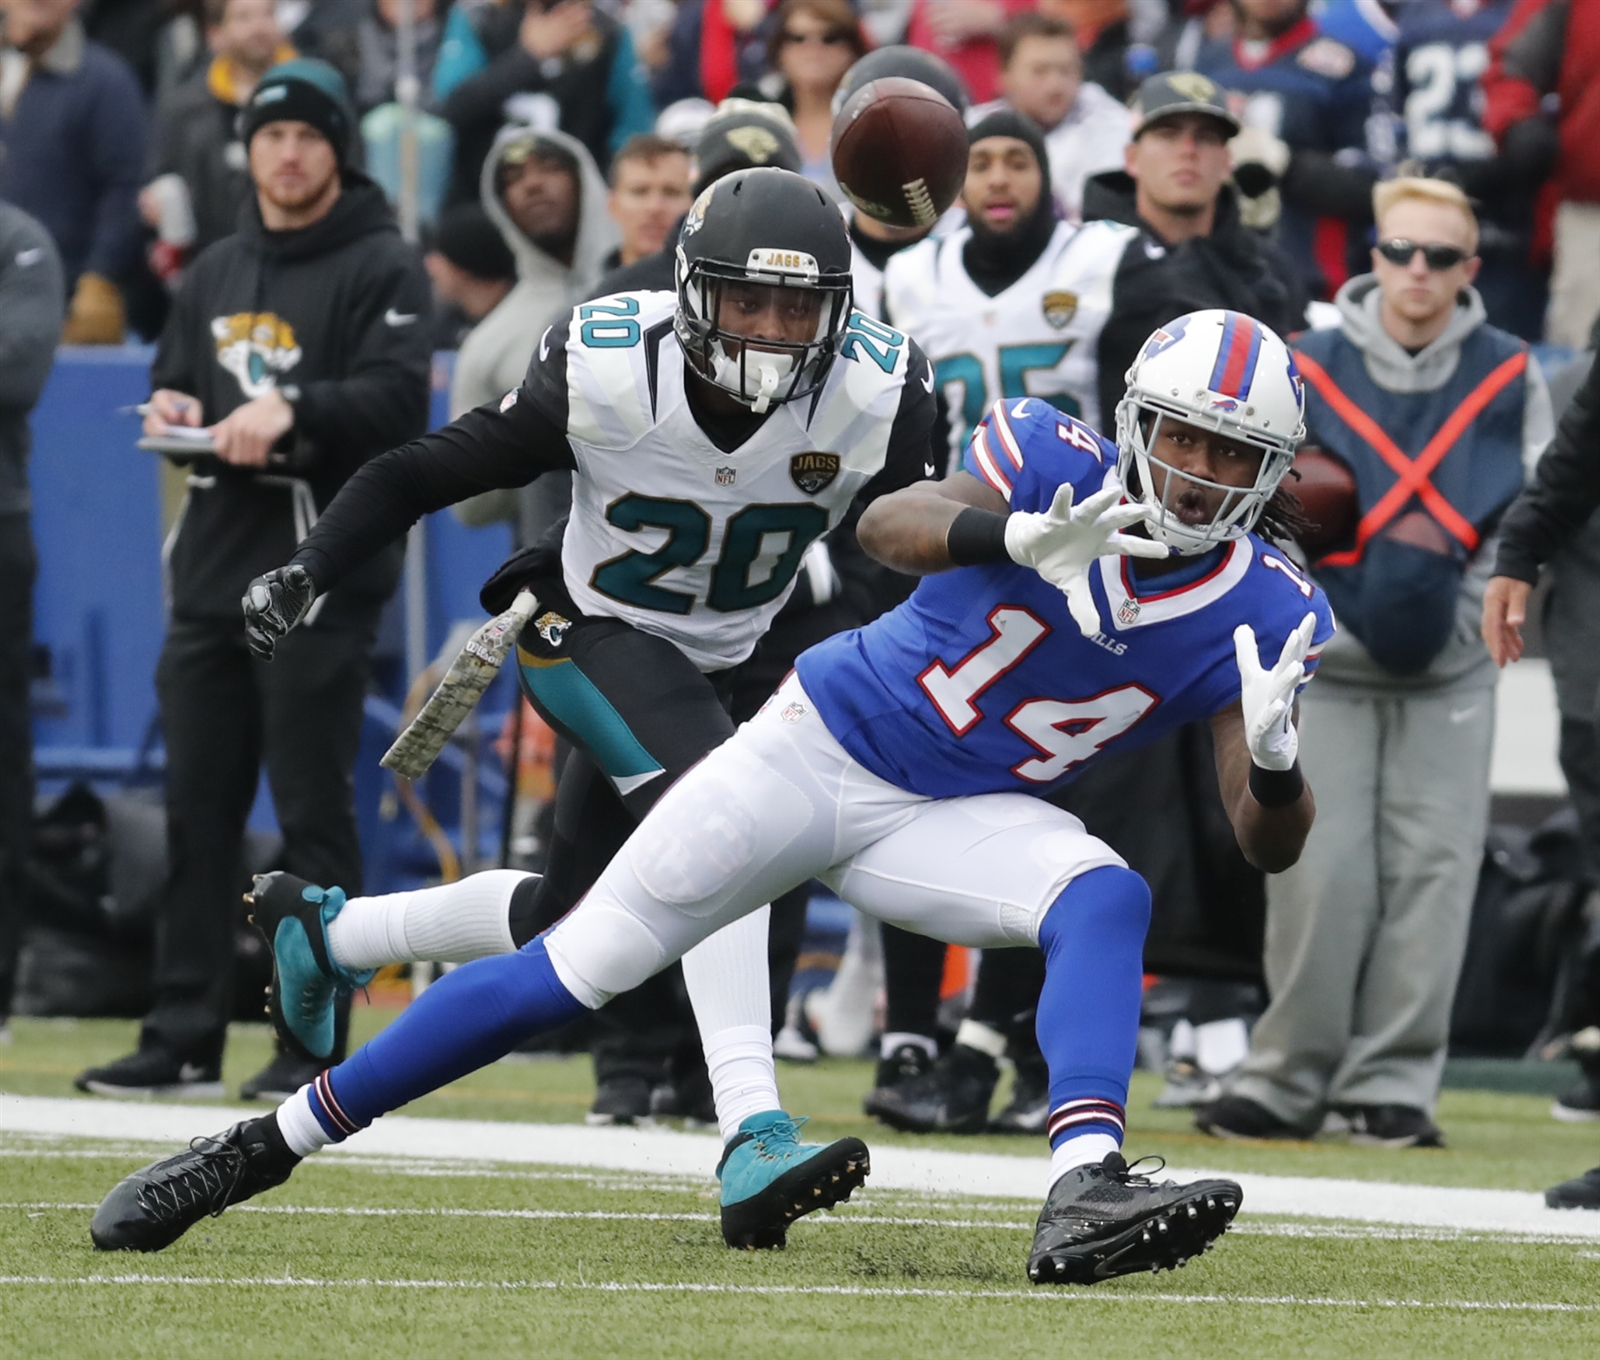 Buffalo Bills Sammy Watkins makes a catch against the Jacksonville Jaguars during the second quarter.